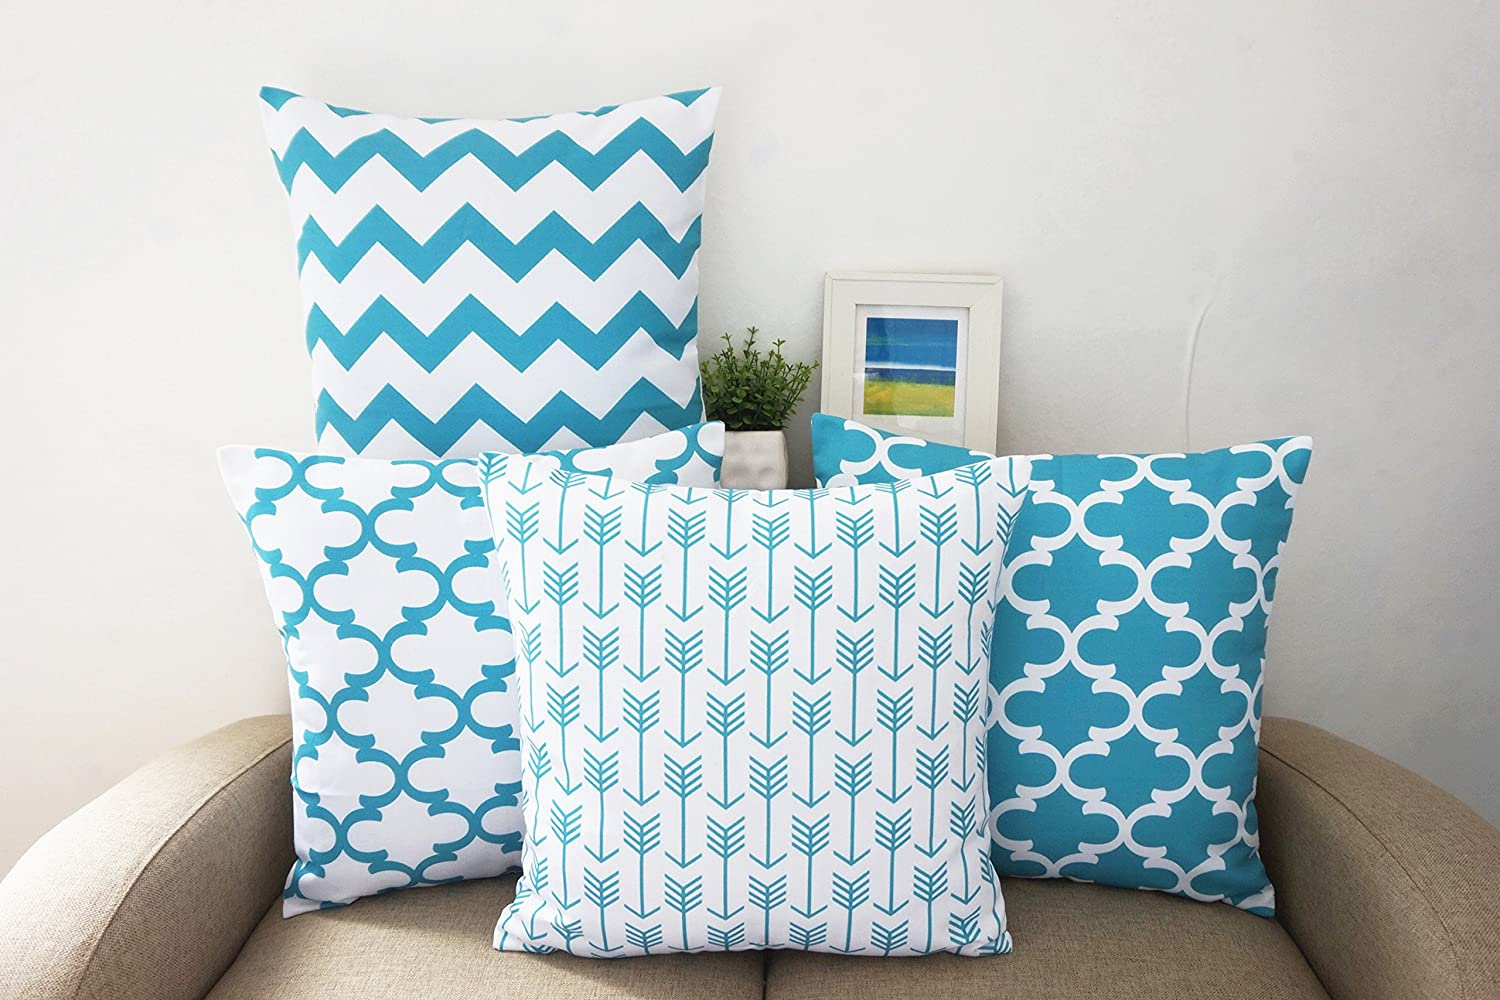 amazoncom howarmer® canvas cotton aqua blue decorative throw  - amazoncom howarmer® canvas cotton aqua blue decorative throw pillowscover set of  geometric pattern cushion cover for couch  x  bluetrellis chain